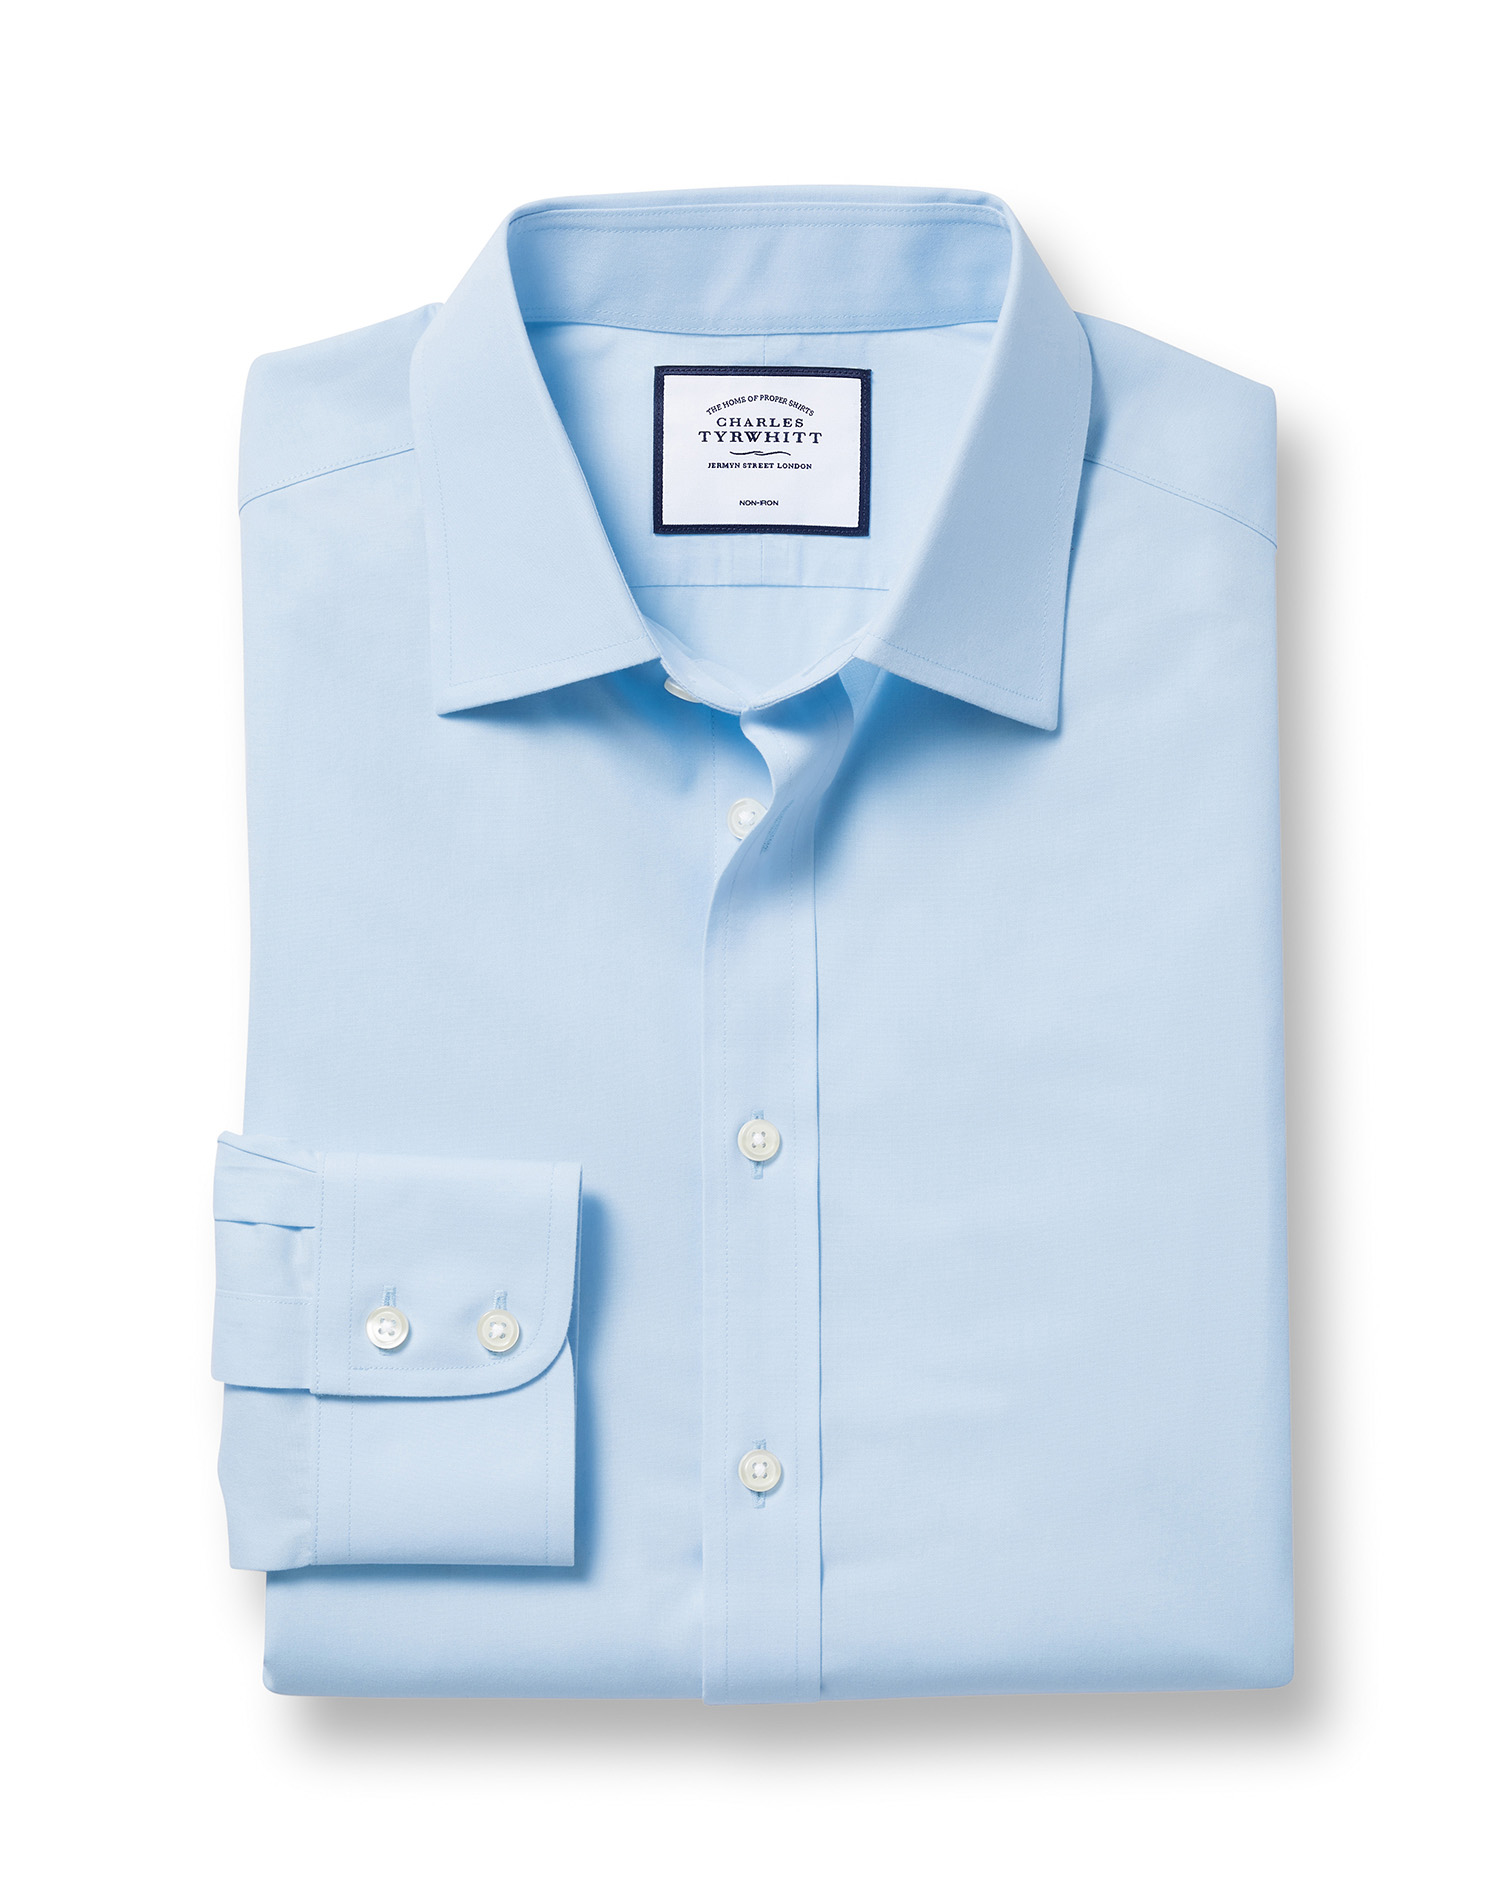 Classic Fit Non-Iron Poplin Sky Blue Cotton Formal Shirt Double Cuff Size 16/35 by Charles Tyrwhitt